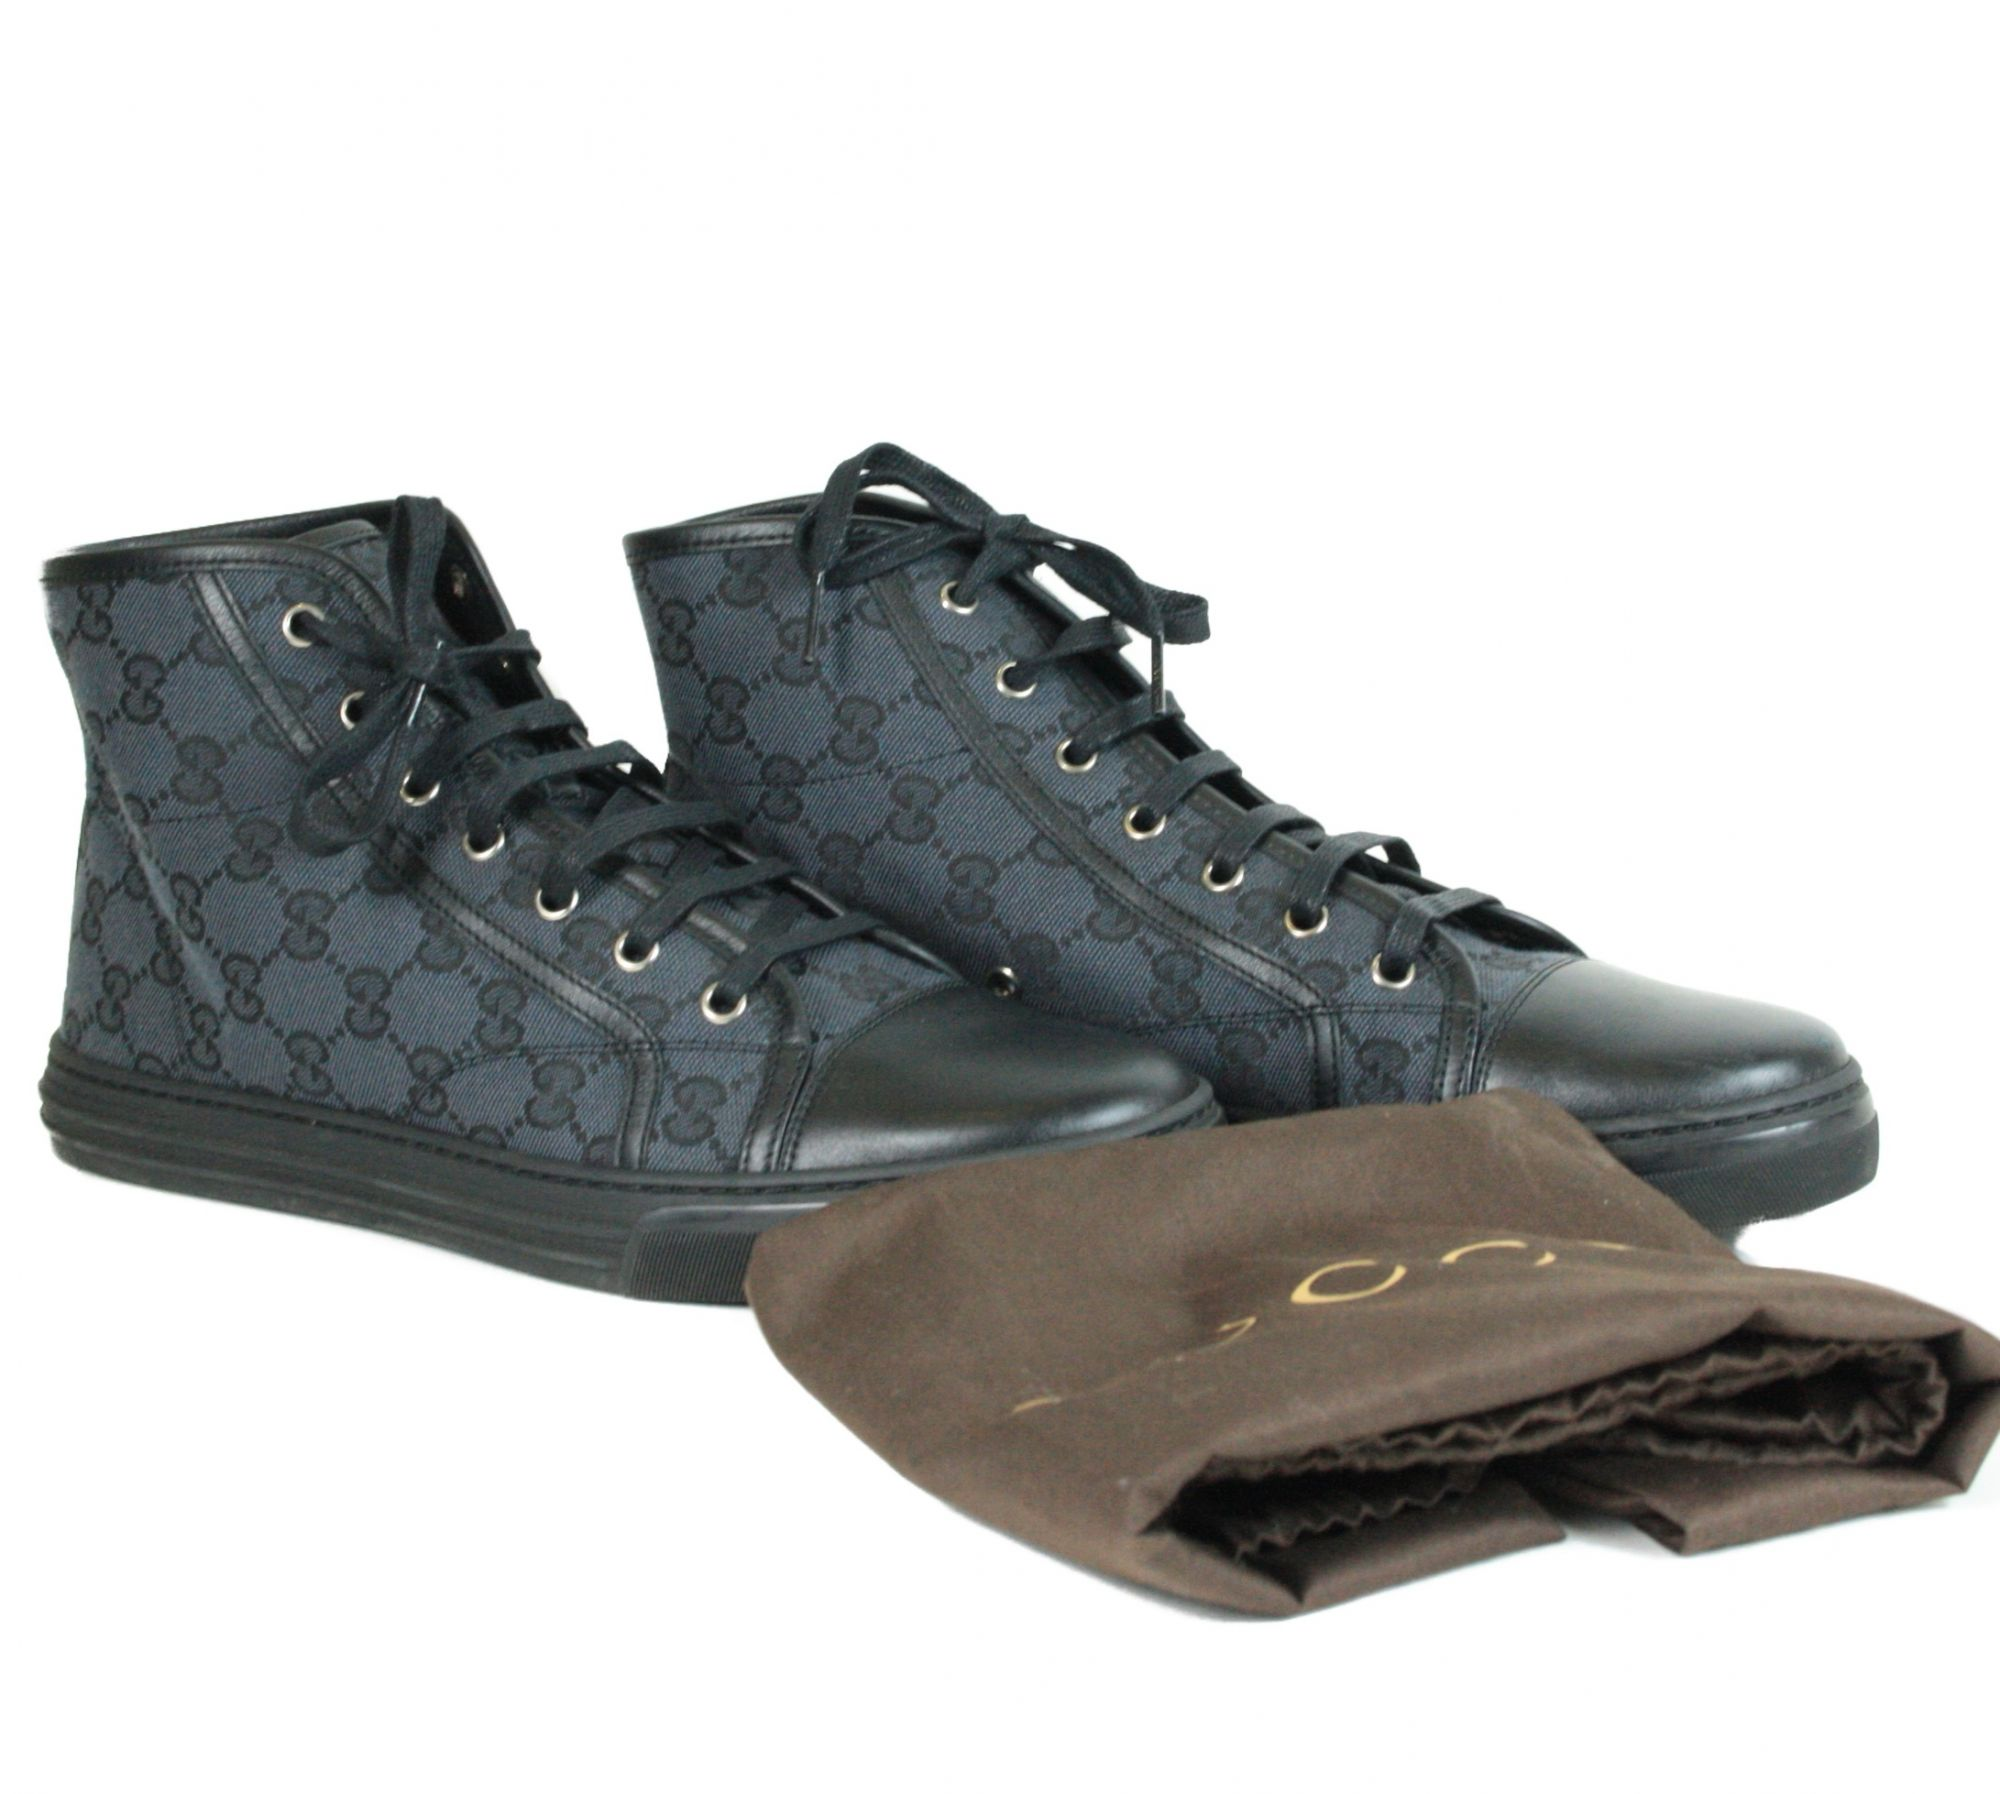 GG Canvas and Leather Lace Up High Top Sneakers (Size: 41)